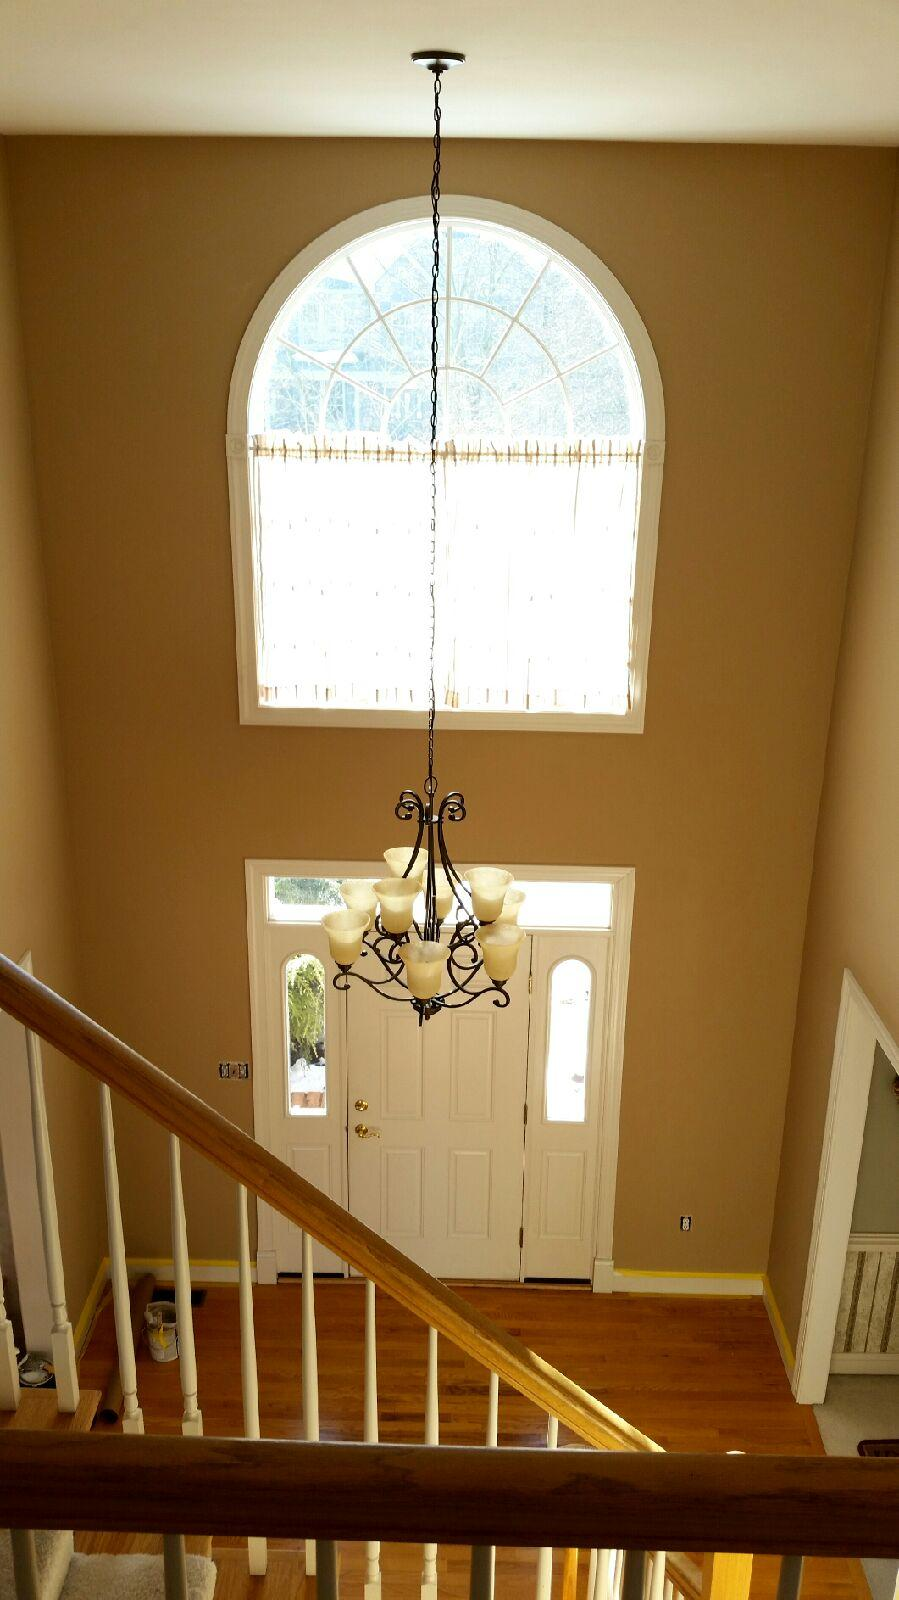 Latest house painting trends in harrisburg pa just add paint serving south central pennsylvania for Interior painting harrisburg pa